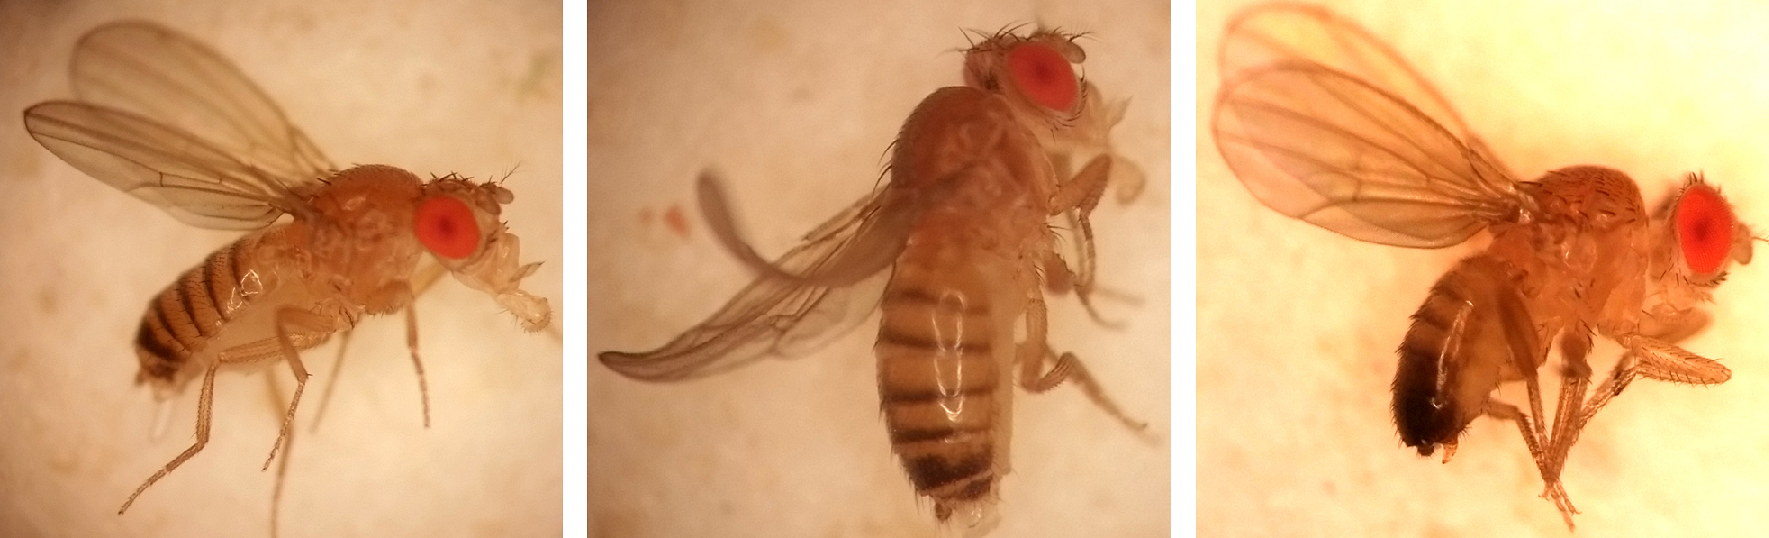 Three fruit flies from the Kalderon lab.